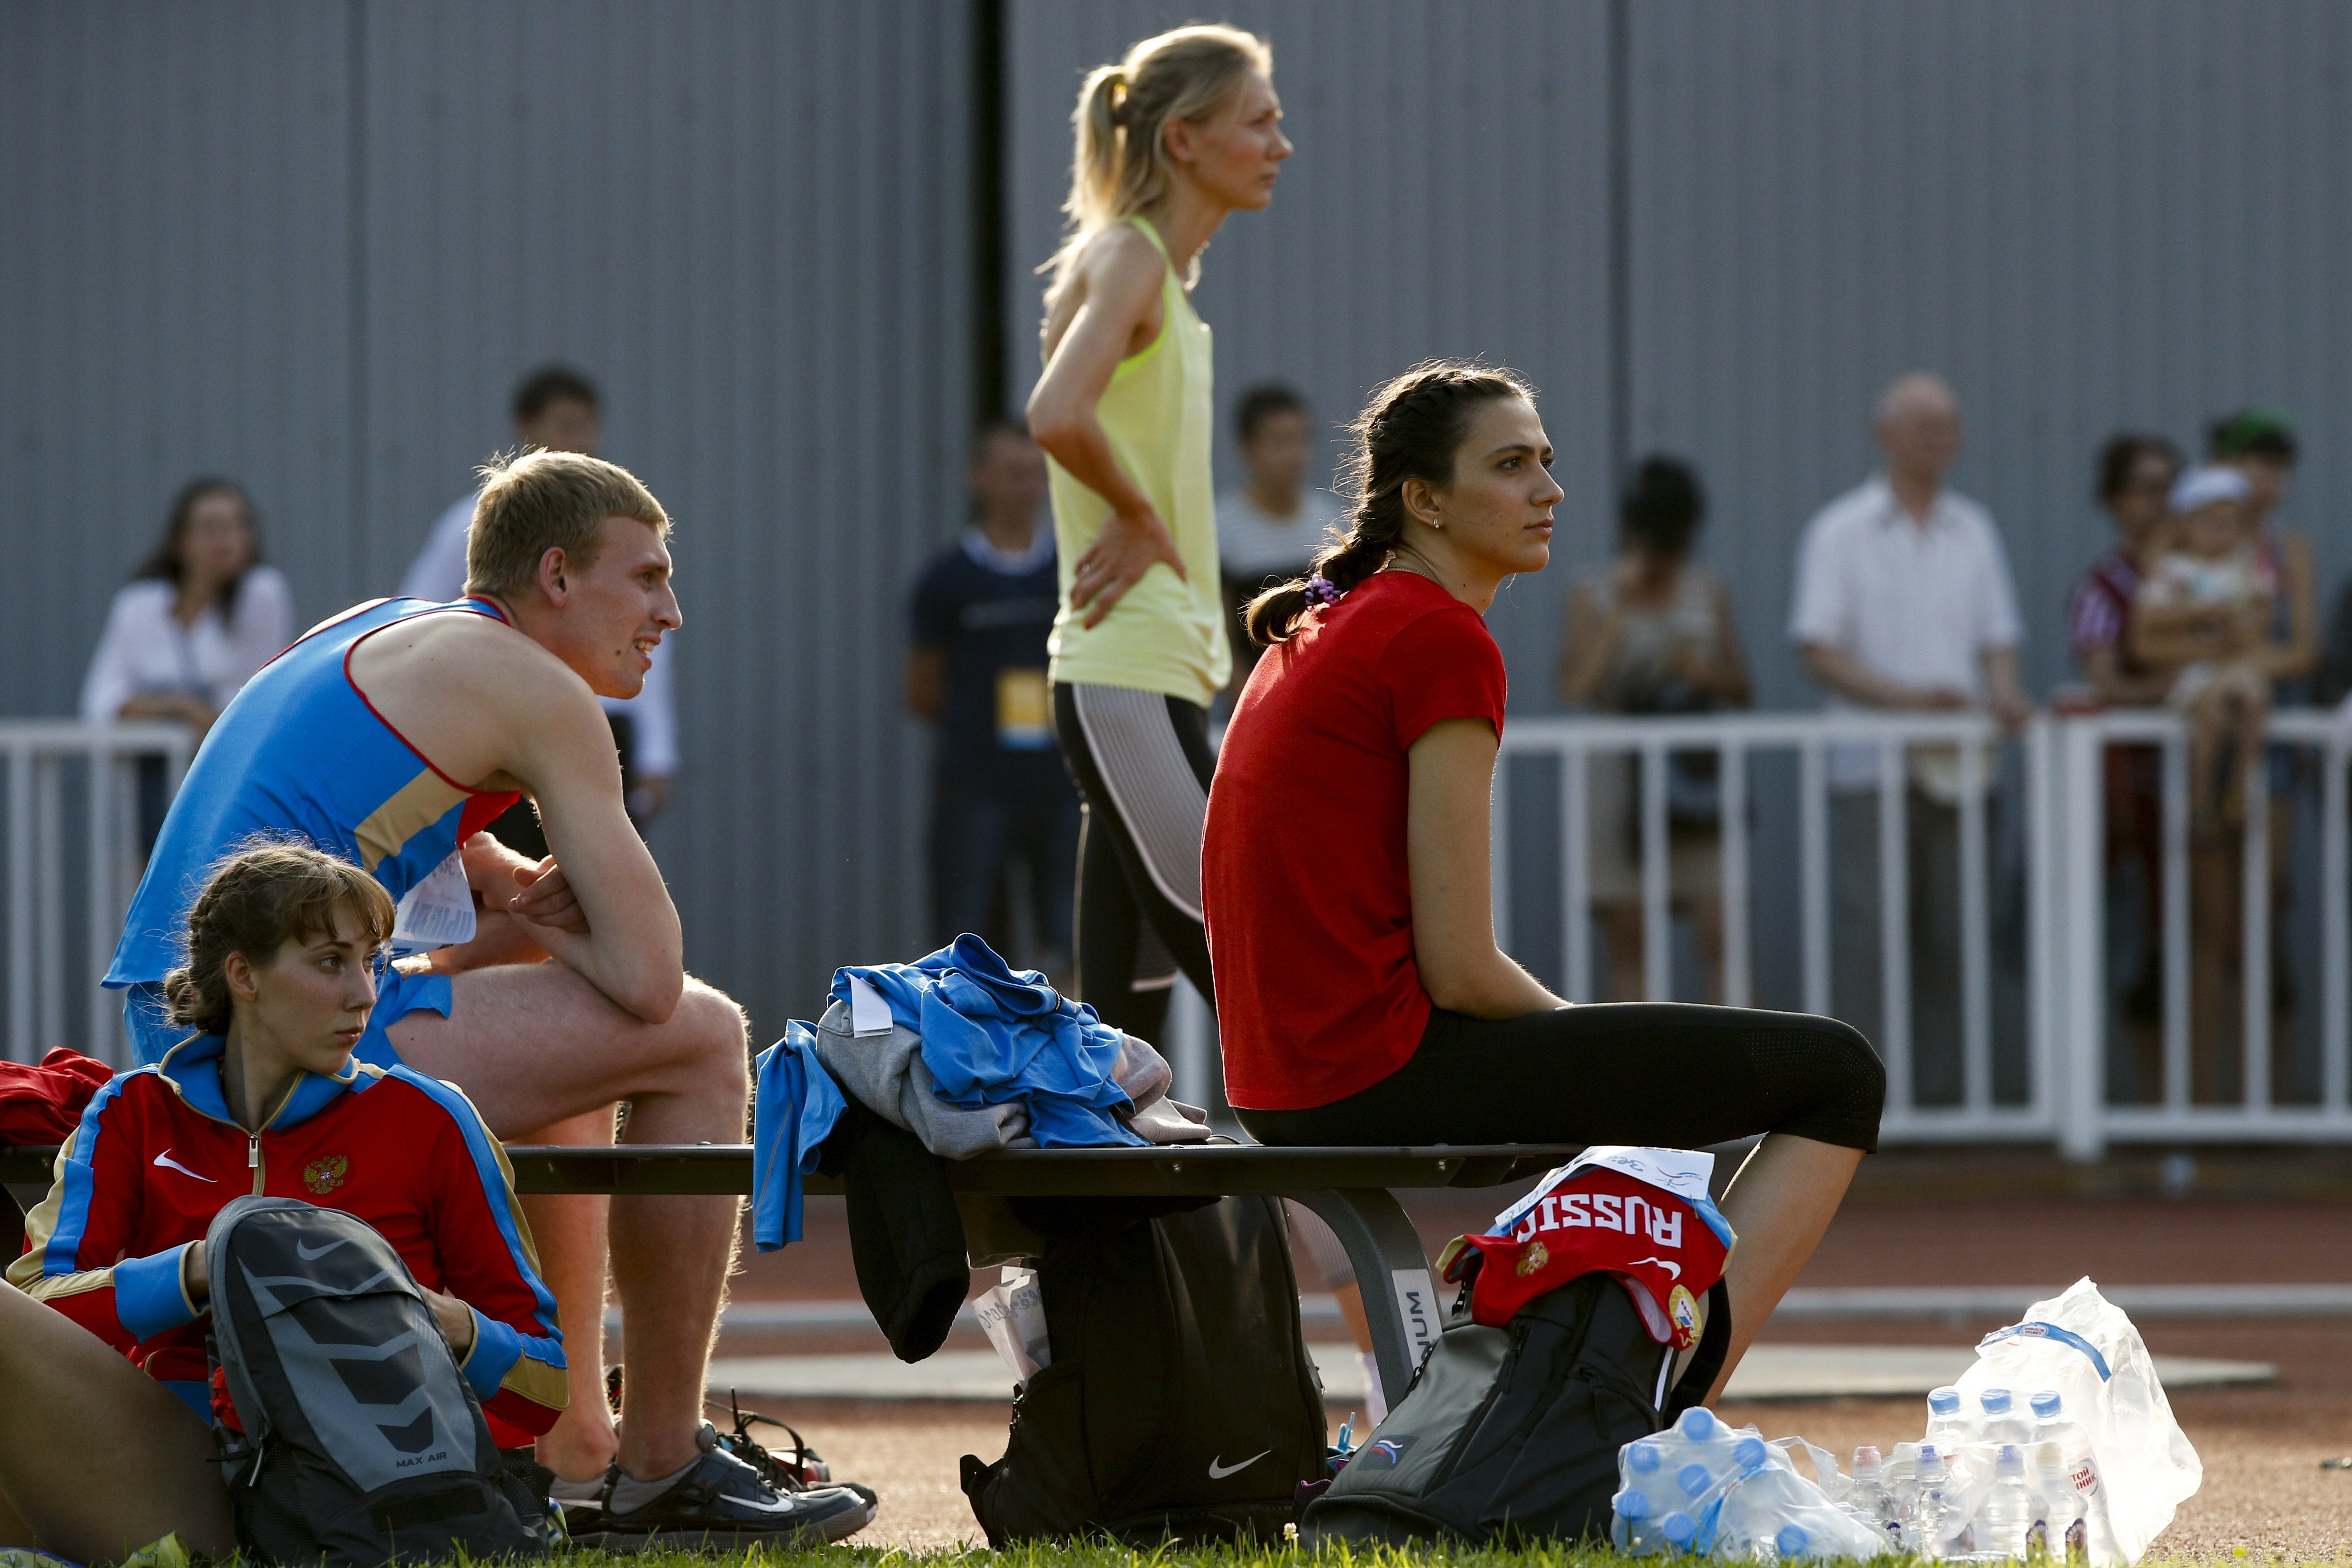 World Championships gold medalist Mariya Kuchina, right, rests with the other Russian athletes as she waits to make an attempt in the women's high jump during the Russian Stars 2016 track and field competitions in Moscow, Russia, Thursday, July 28, 2016.